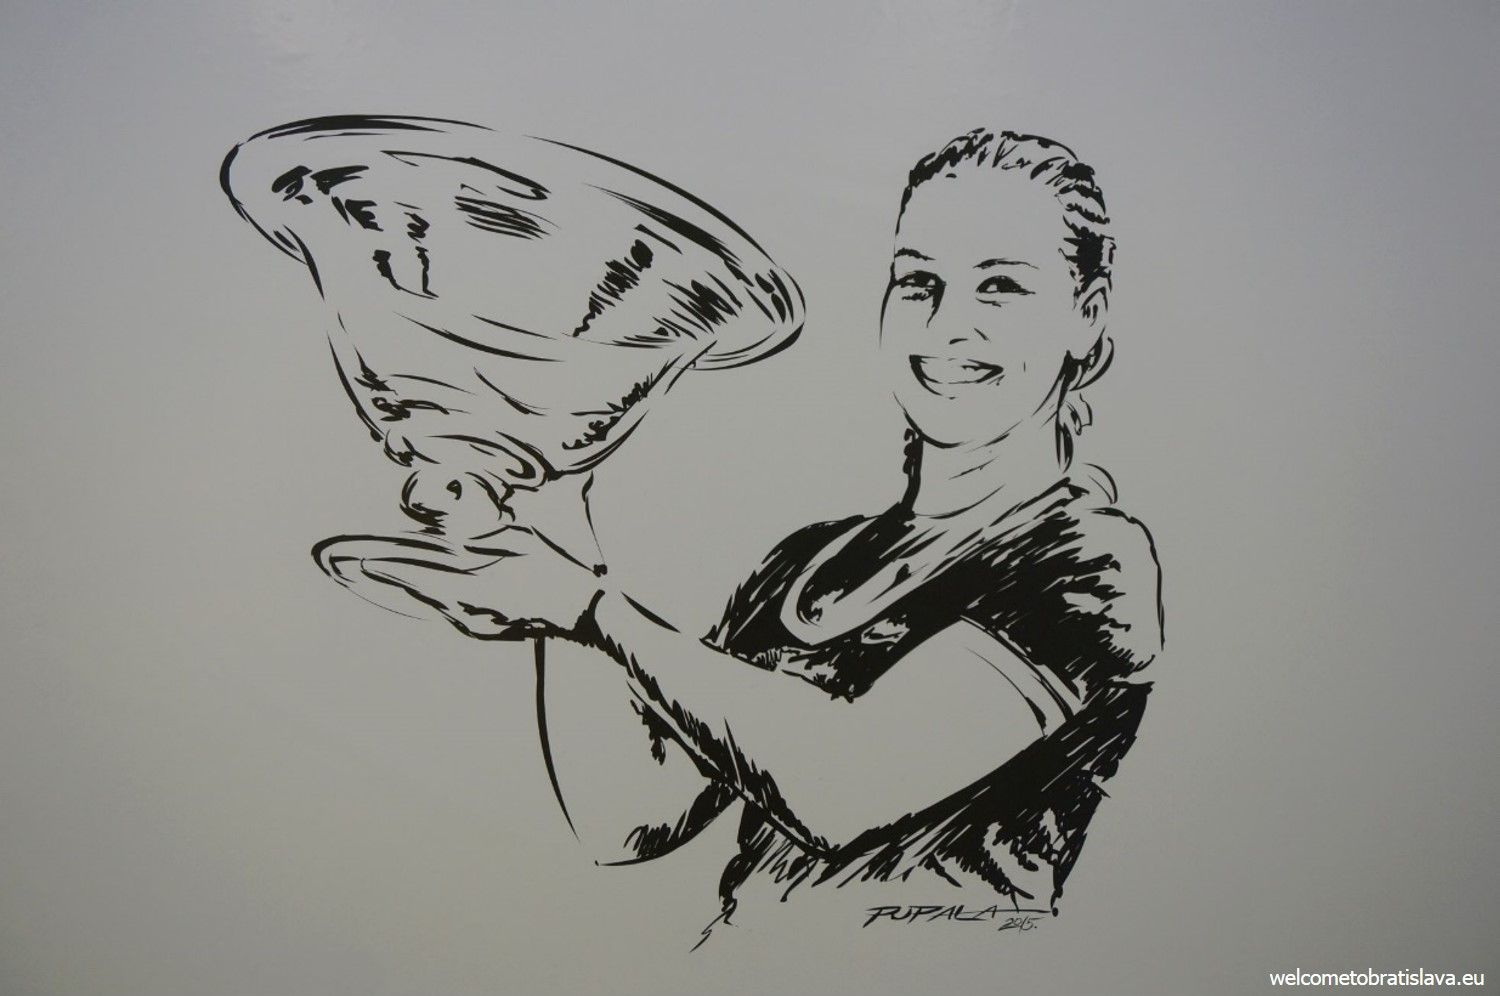 Dominika with a winning trophy